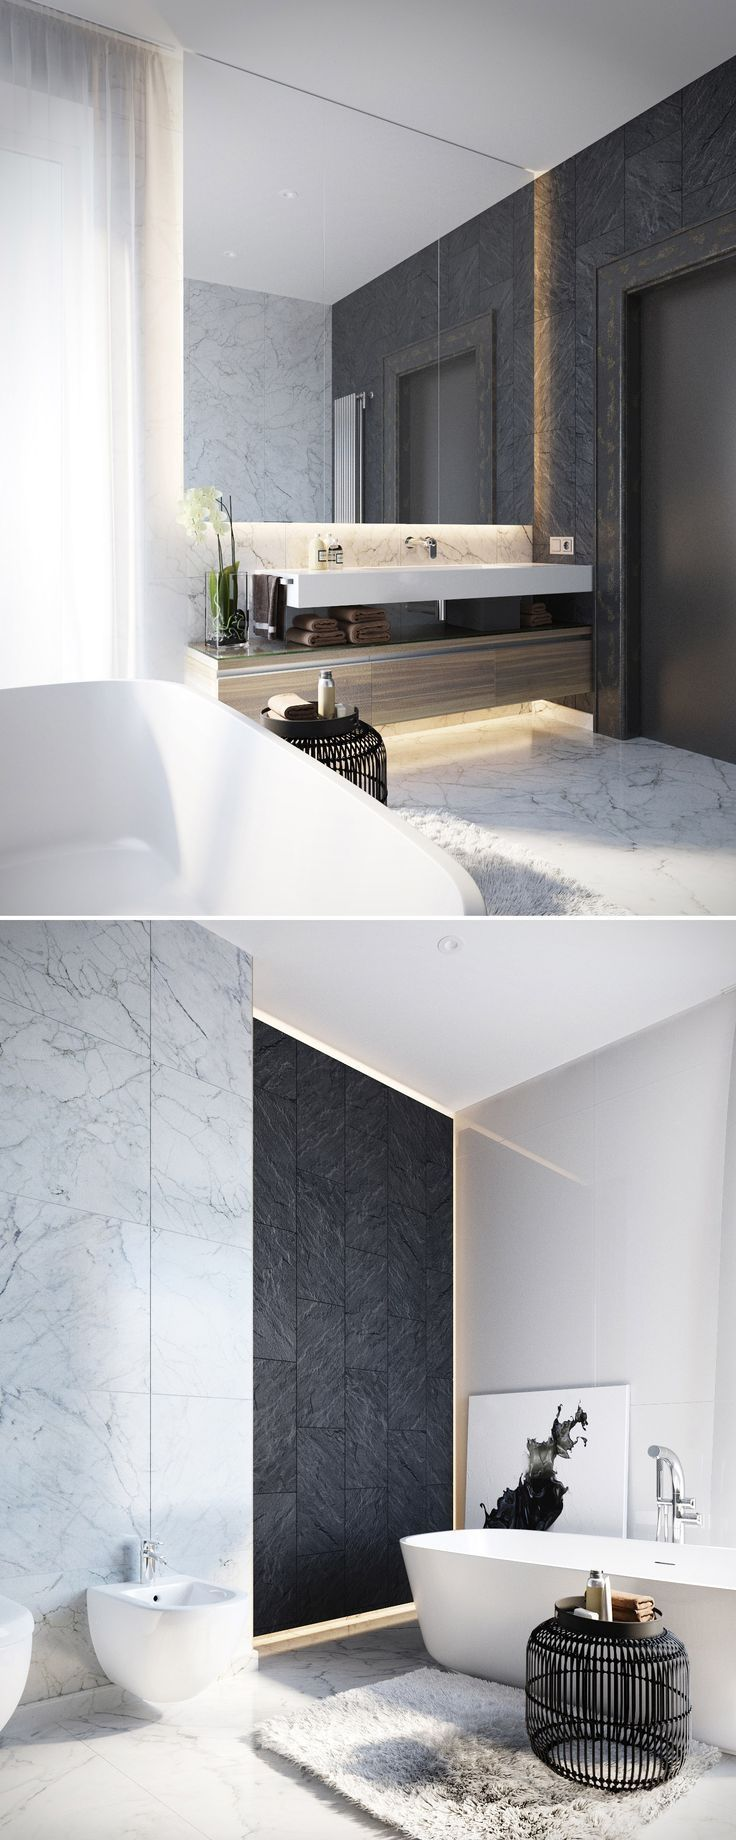 81 Wonderful Bathtub Ideas with Modern Design | Bathtub ideas ... on long bathroom remodel, long bathroom countertop, long bathroom mirrors, long bedroom ideas, long painting ideas, long bathroom vanity, long wall design ideas, long bathroom lighting, long hallway design ideas, long dining room ideas, long basement design ideas, long driveway design ideas, long bathroom makeovers, long bathroom light fixtures, long bathroom floor plan, long curtains ideas, long walk in closet design ideas, long bathroom windows, long bathroom sinks, long kitchen design ideas,